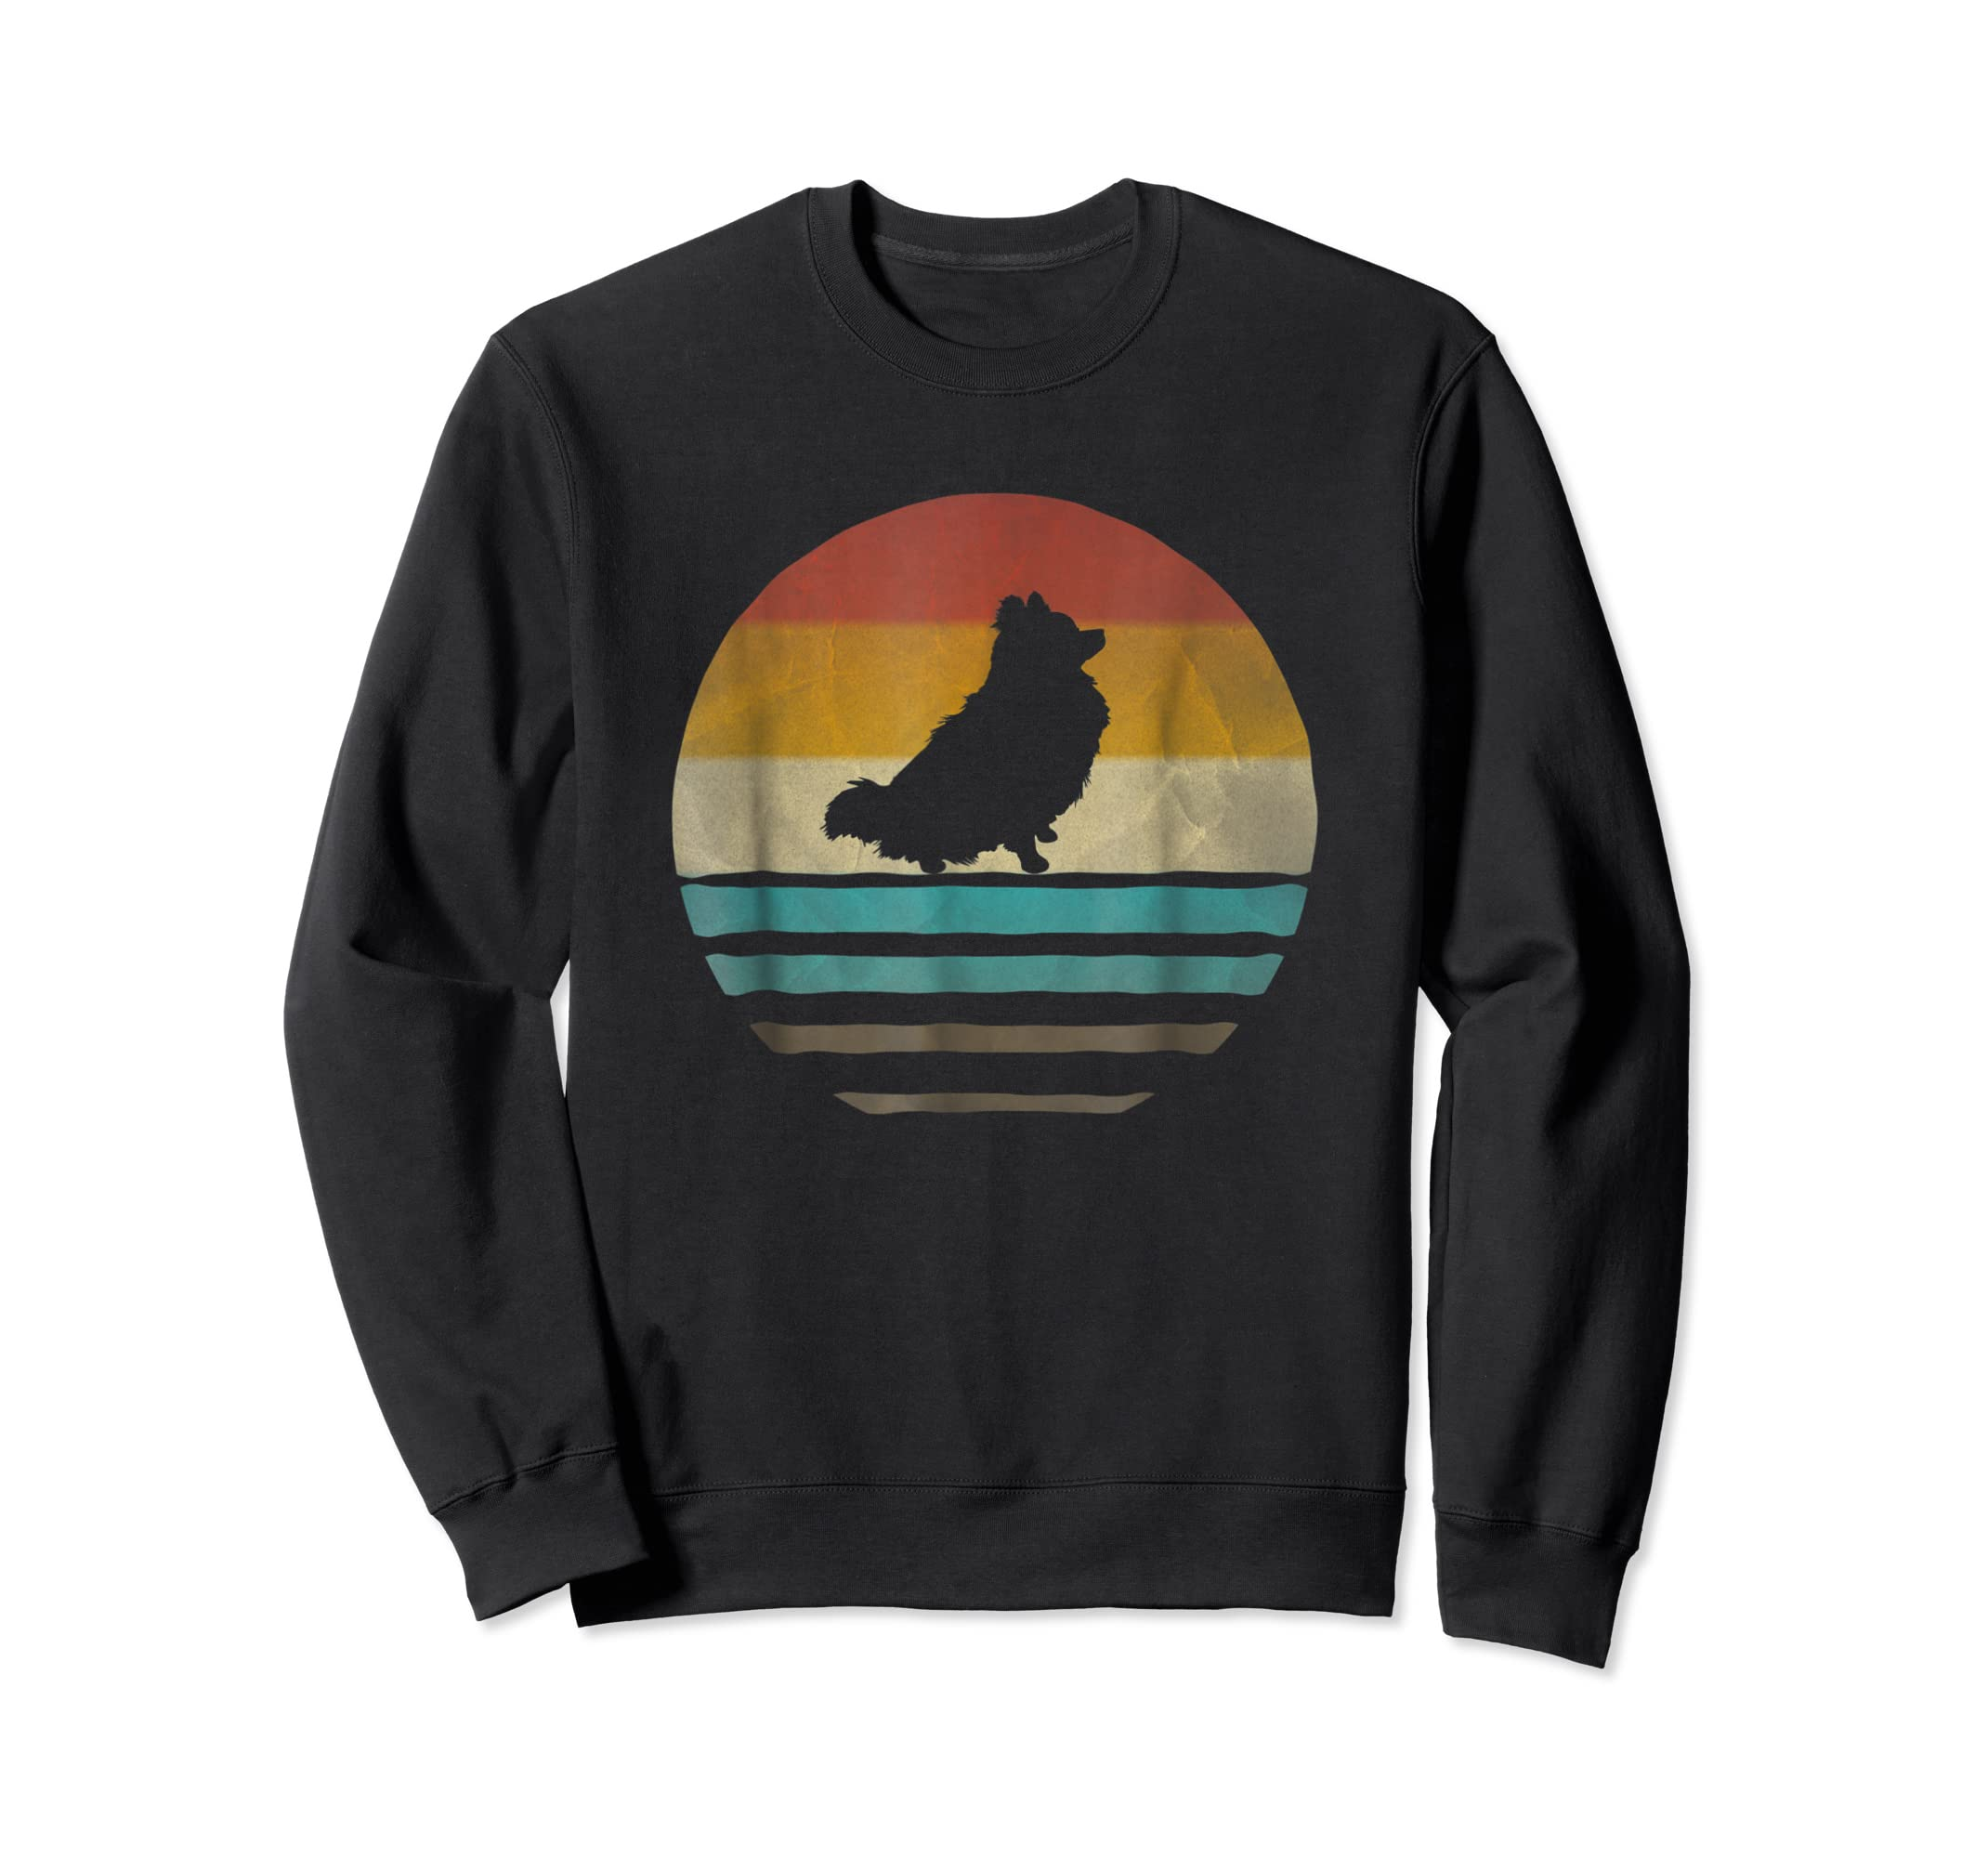 Pomeranian Dog Shirt Retro Vintage 70s Silhouette Distressed-Sweatshirt-Black